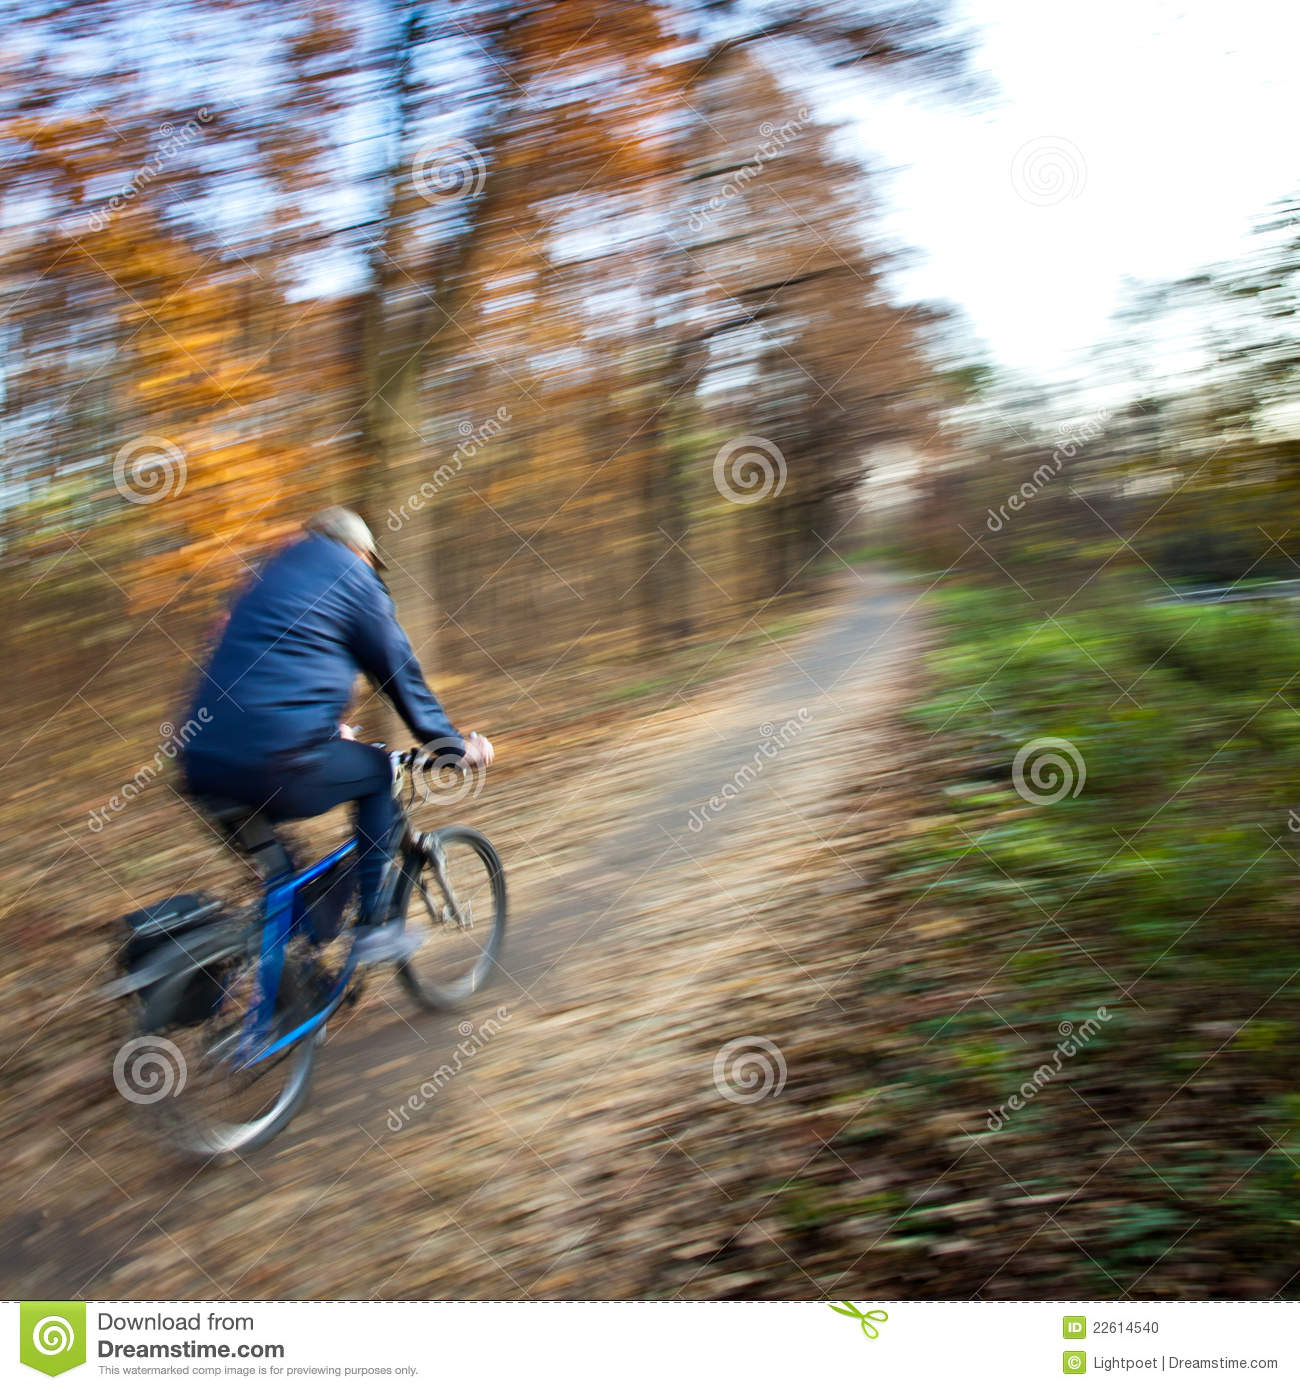 Bicycle Riding Low Angle Motion Blur Royalty Free Stock